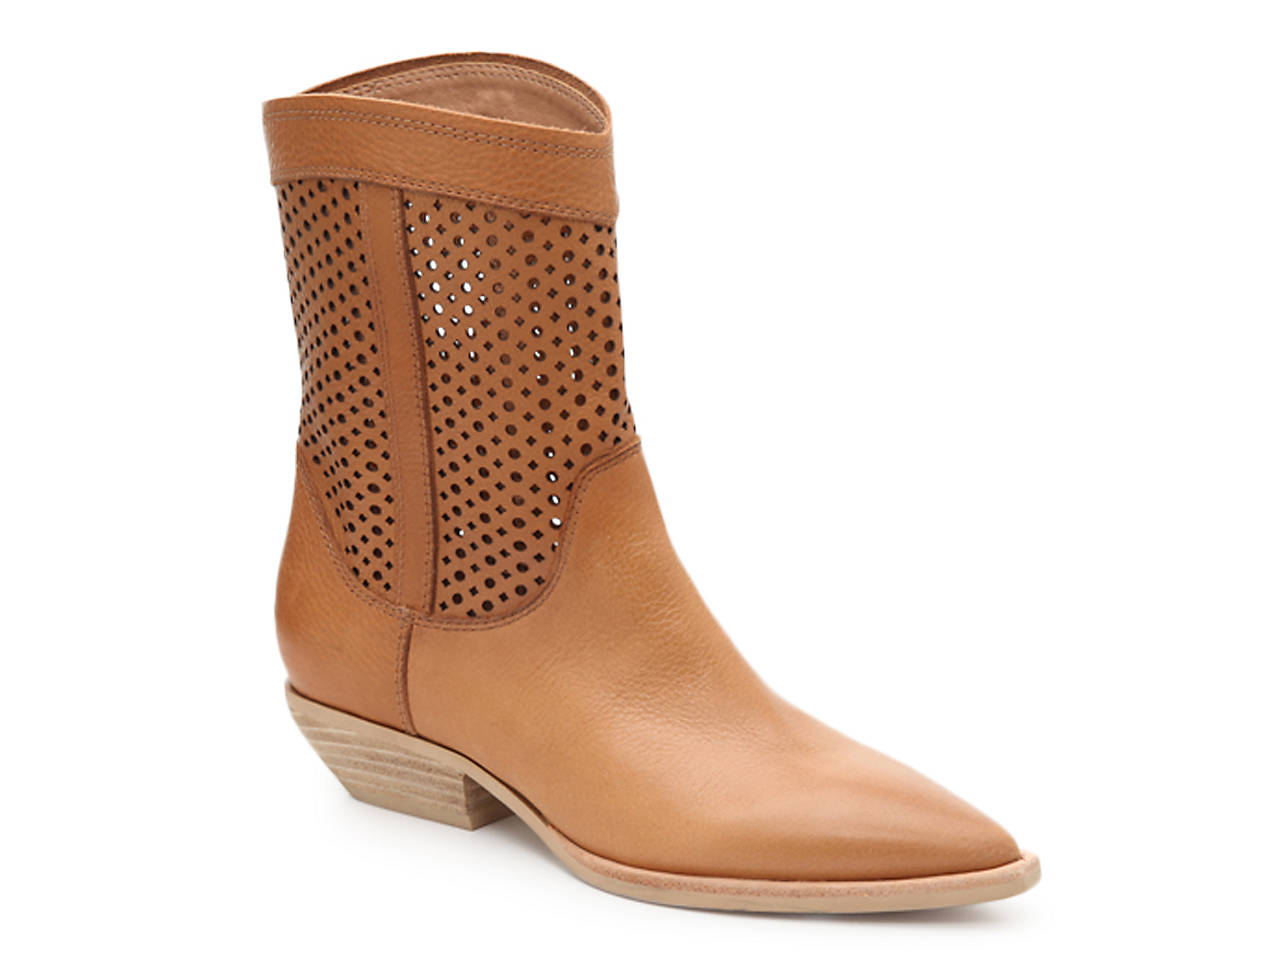 30ee8cf5ee5 Dolce Vita Union Boot Women s Shoes